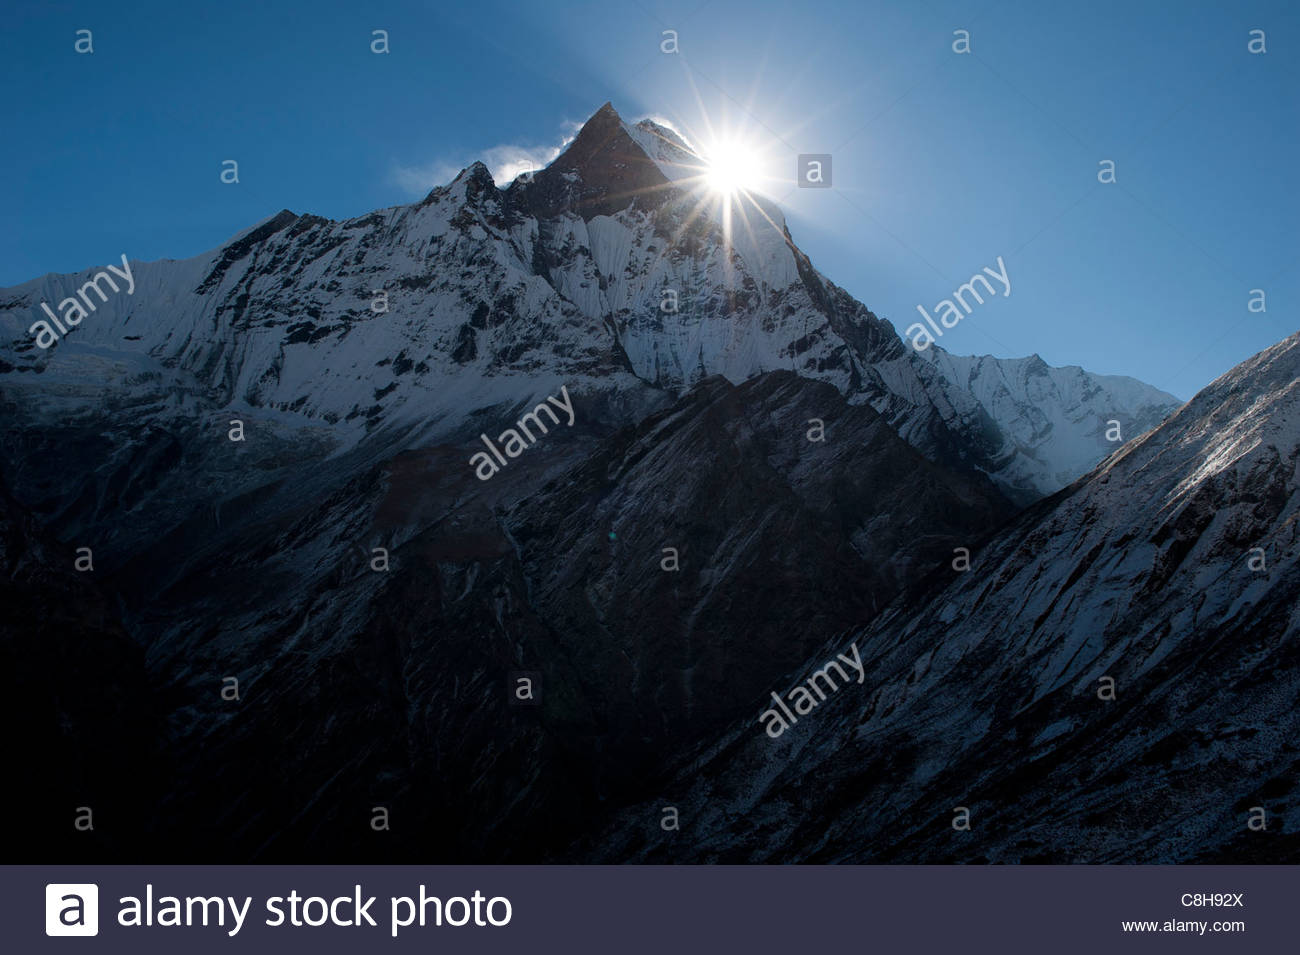 Sunrise above Machhapuchhare better known as the 'Fishtail' mountain. - Stock Image